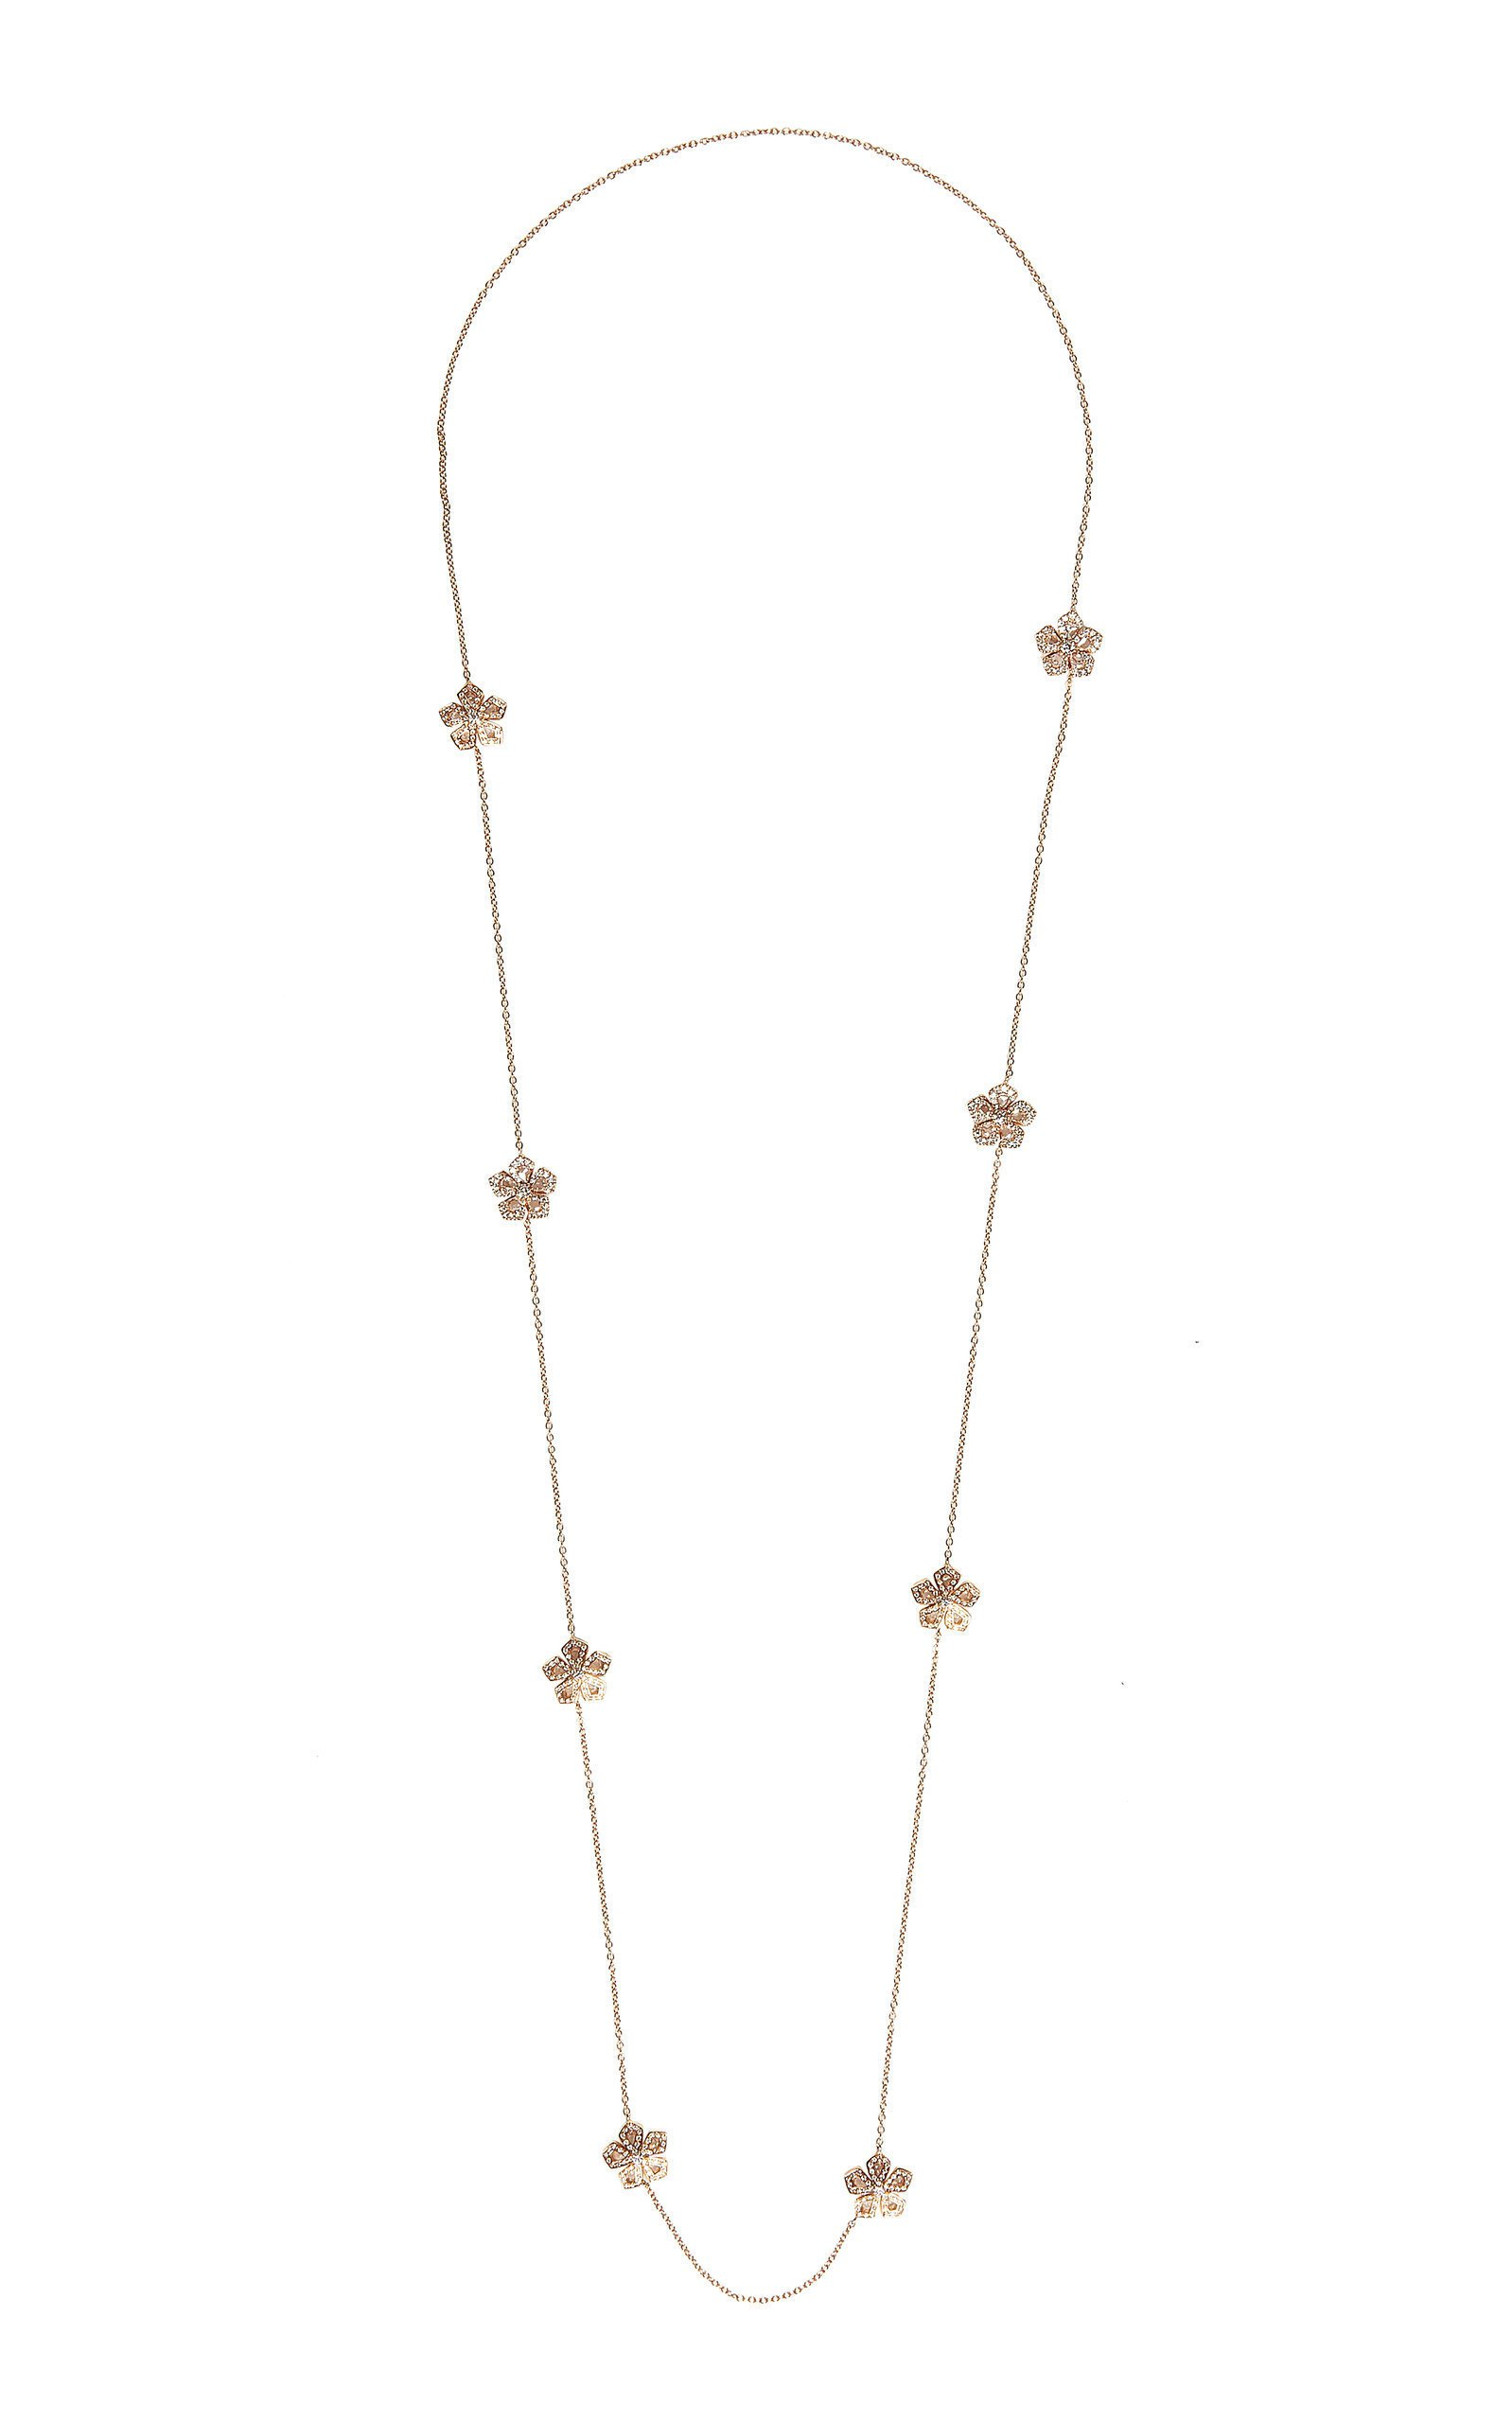 David Morris Miss Daisy Necklaces